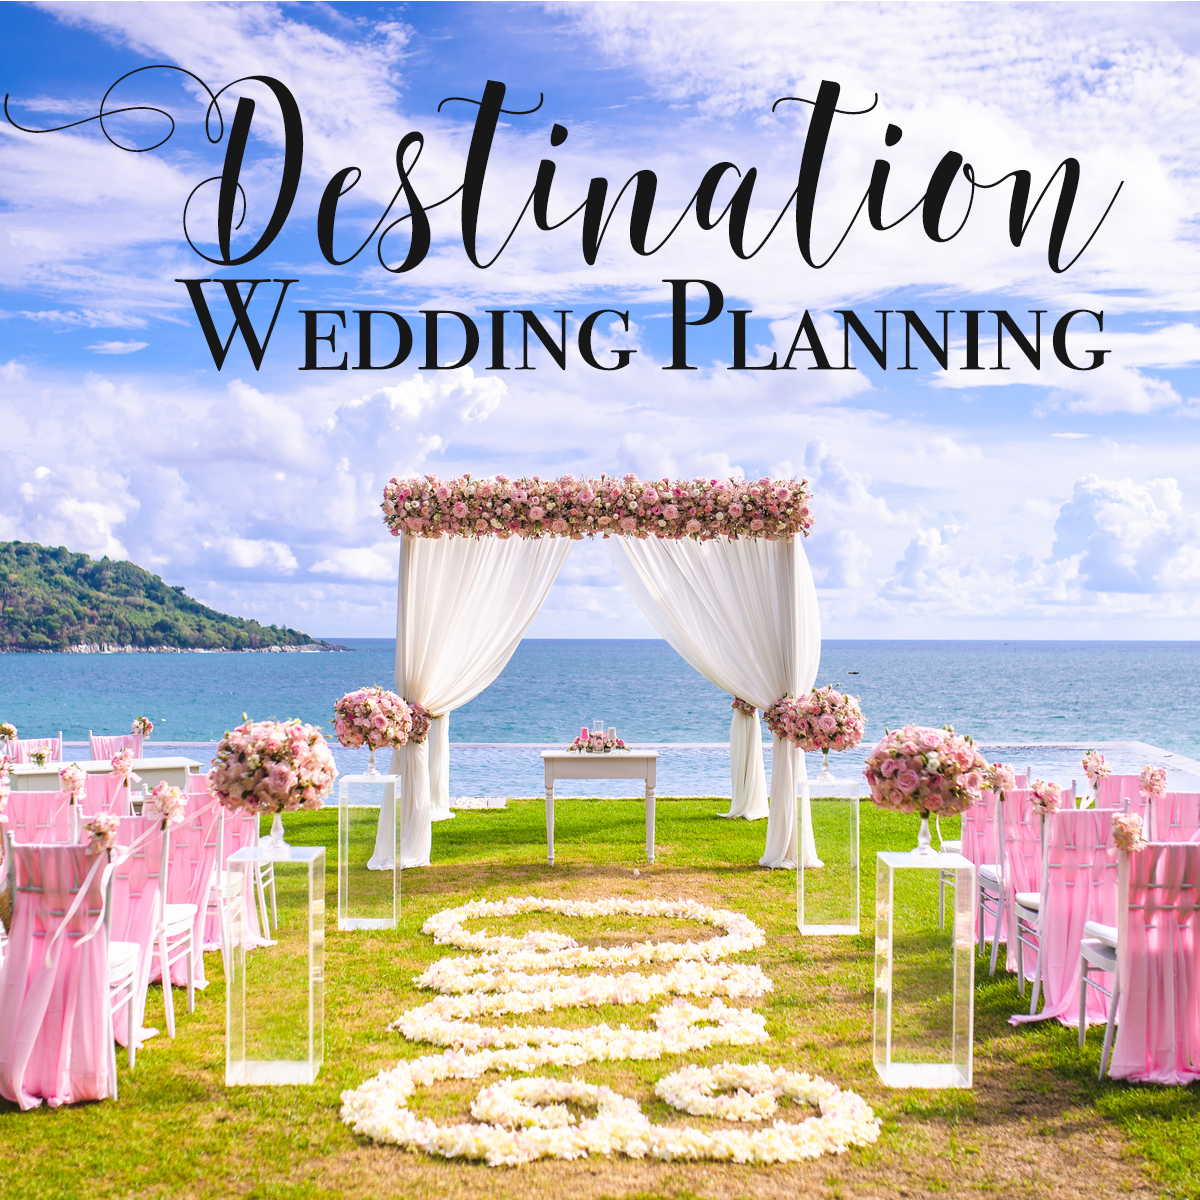 Destination Wedding Planner Certification